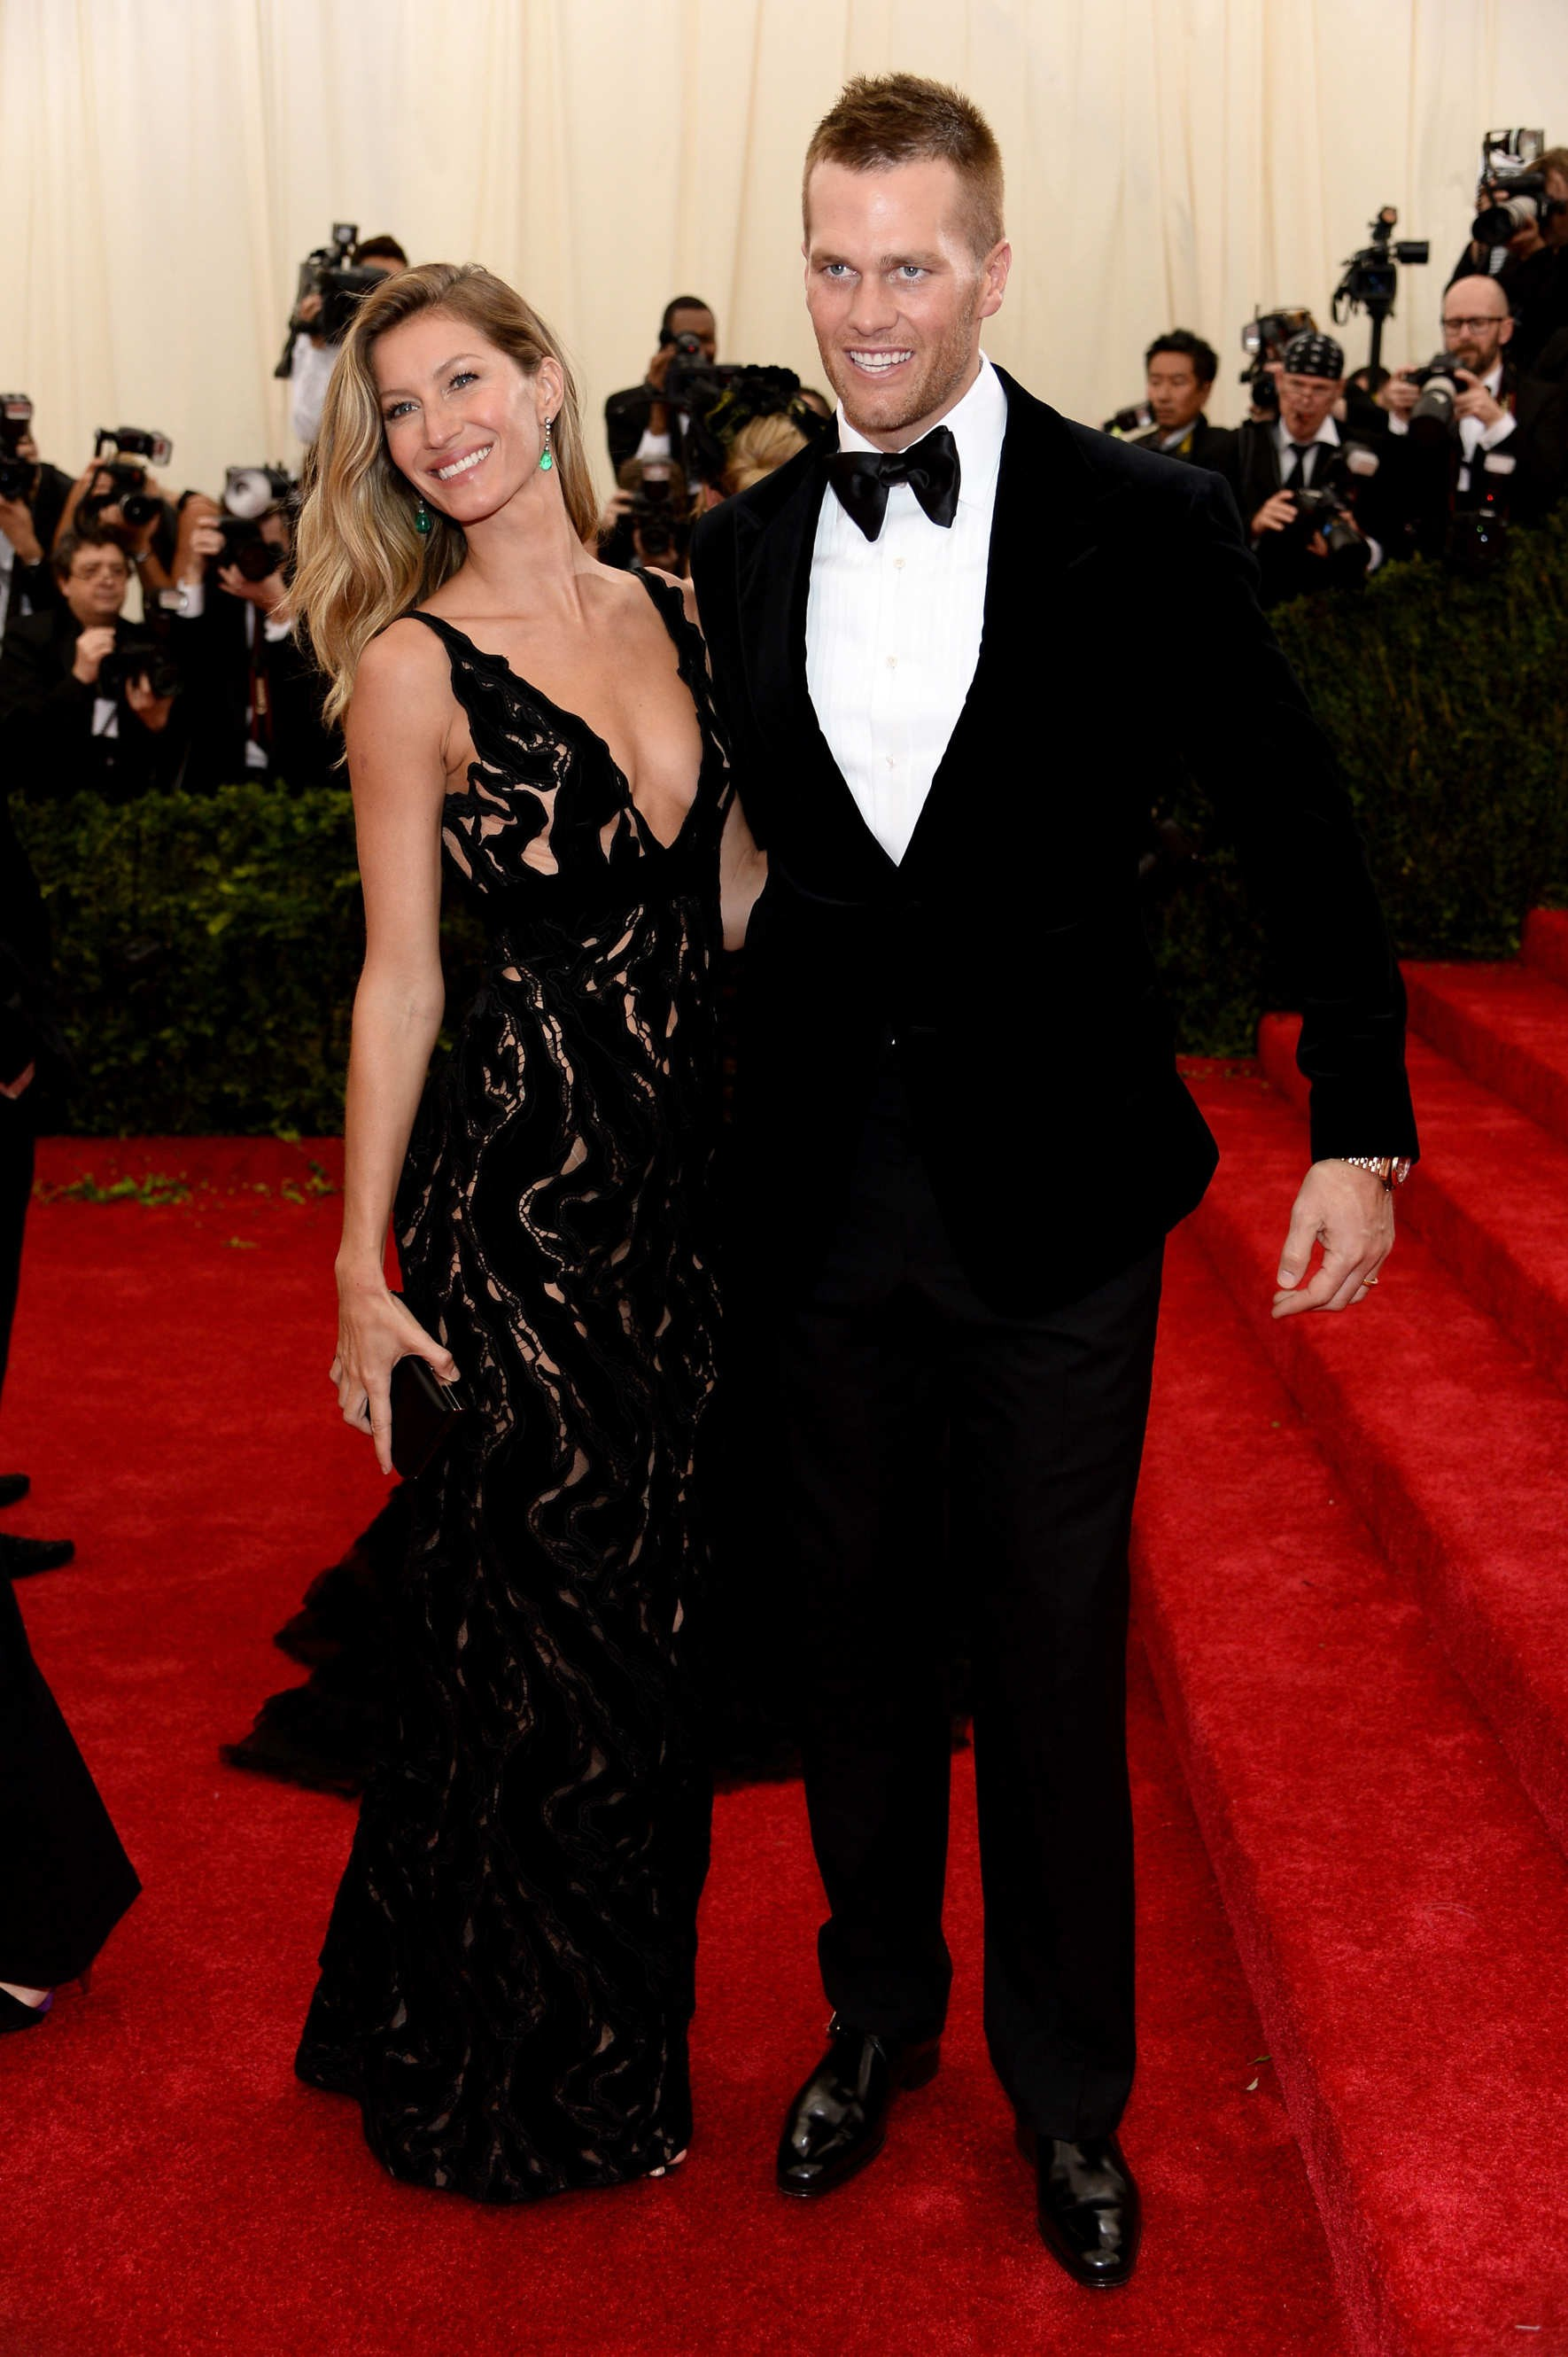 Gisele Bundchenm, de Balenciaga, no Baile do Met de 2014 (Foto: Getty Images)